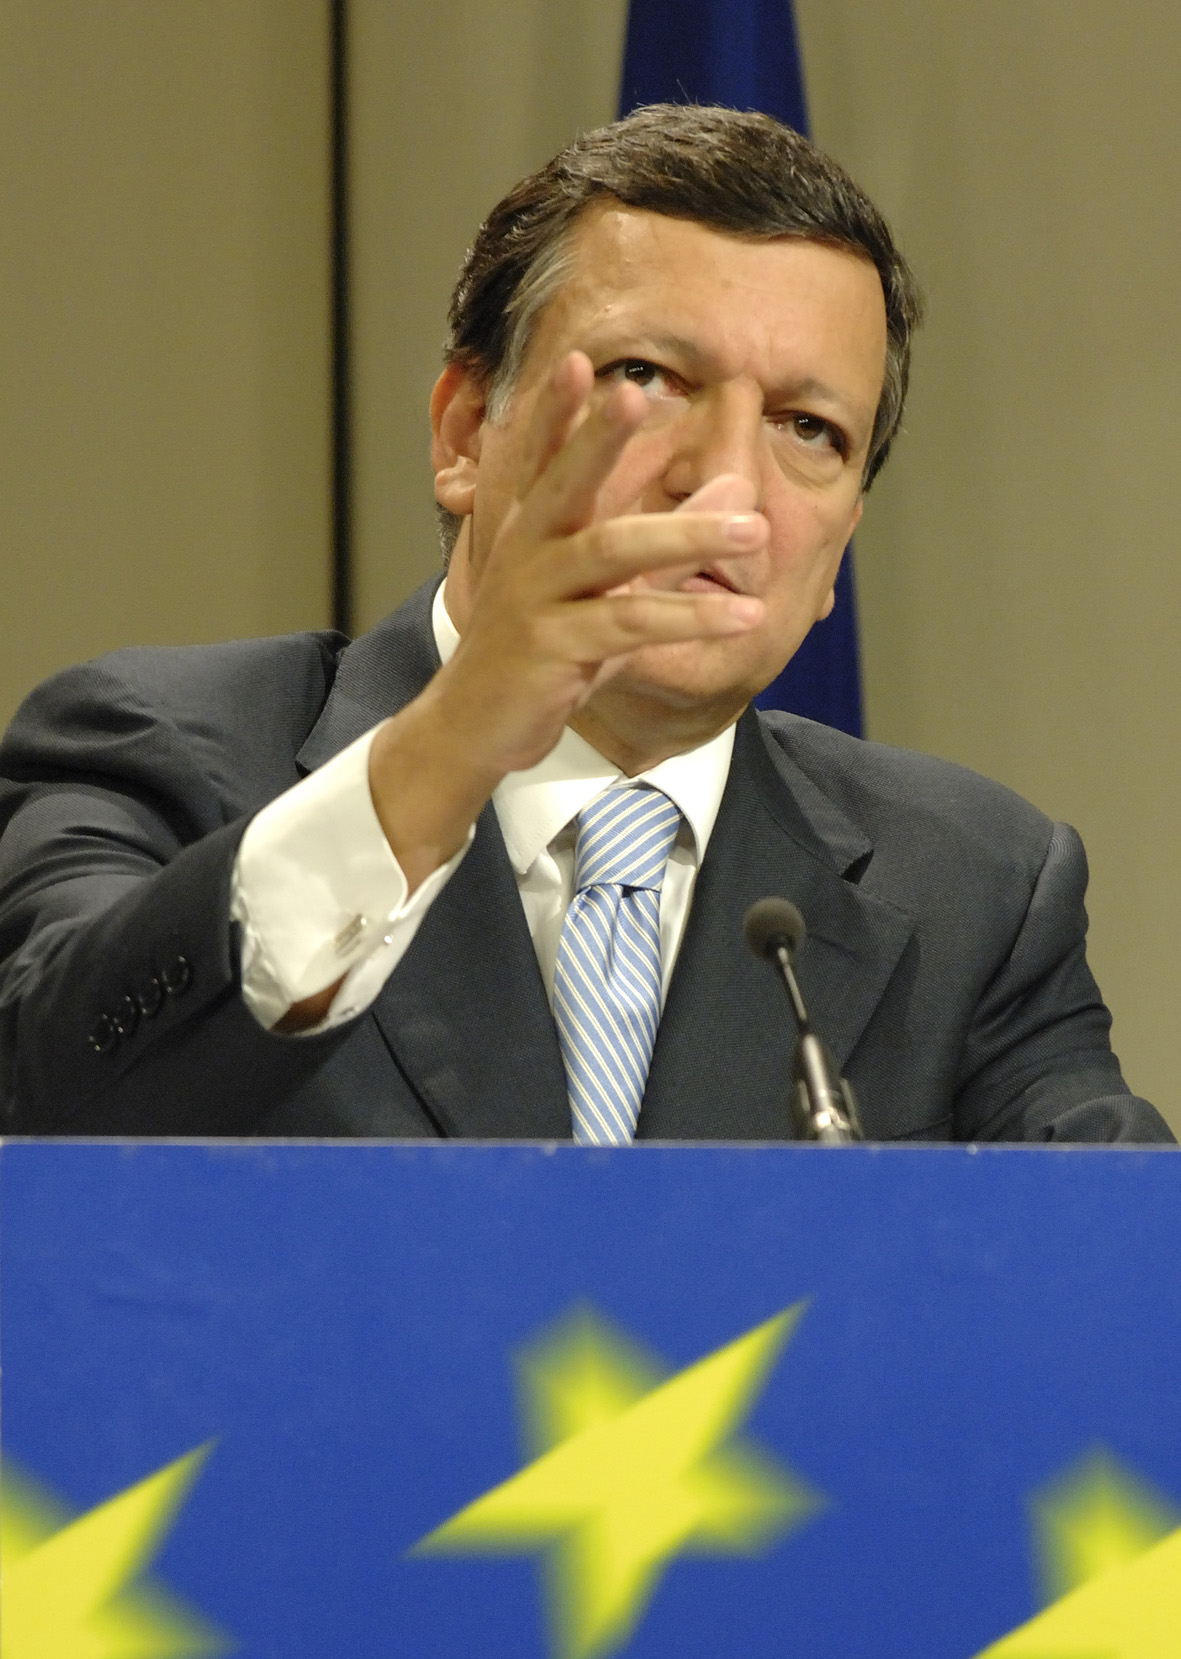 Press conference by José Manuel Barroso, President of the EC, before the Lisbon European Council